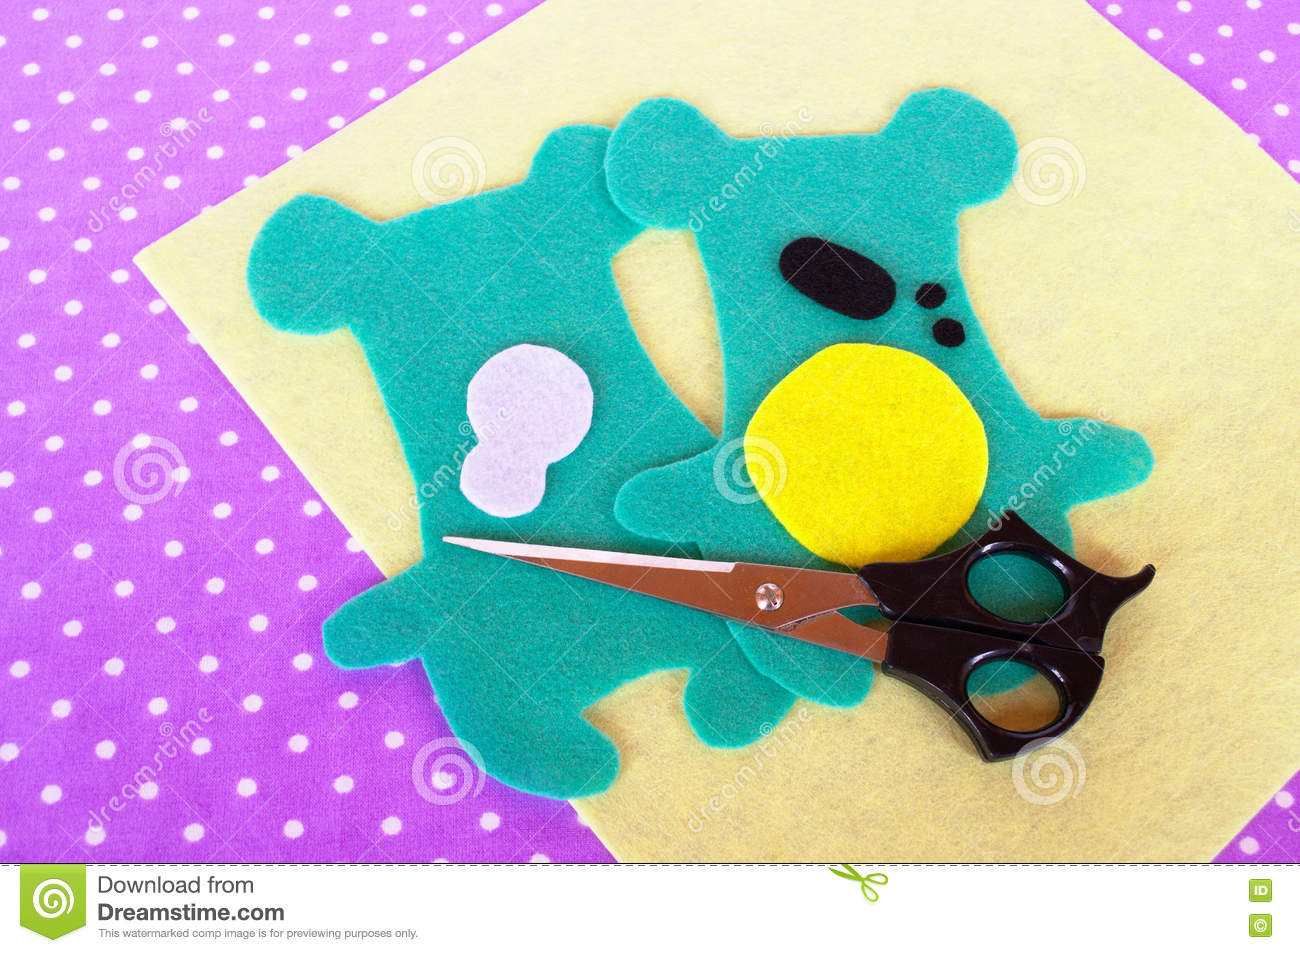 sewing project for children  teddy bear patterns cut from felt  how to make a soft toy at home